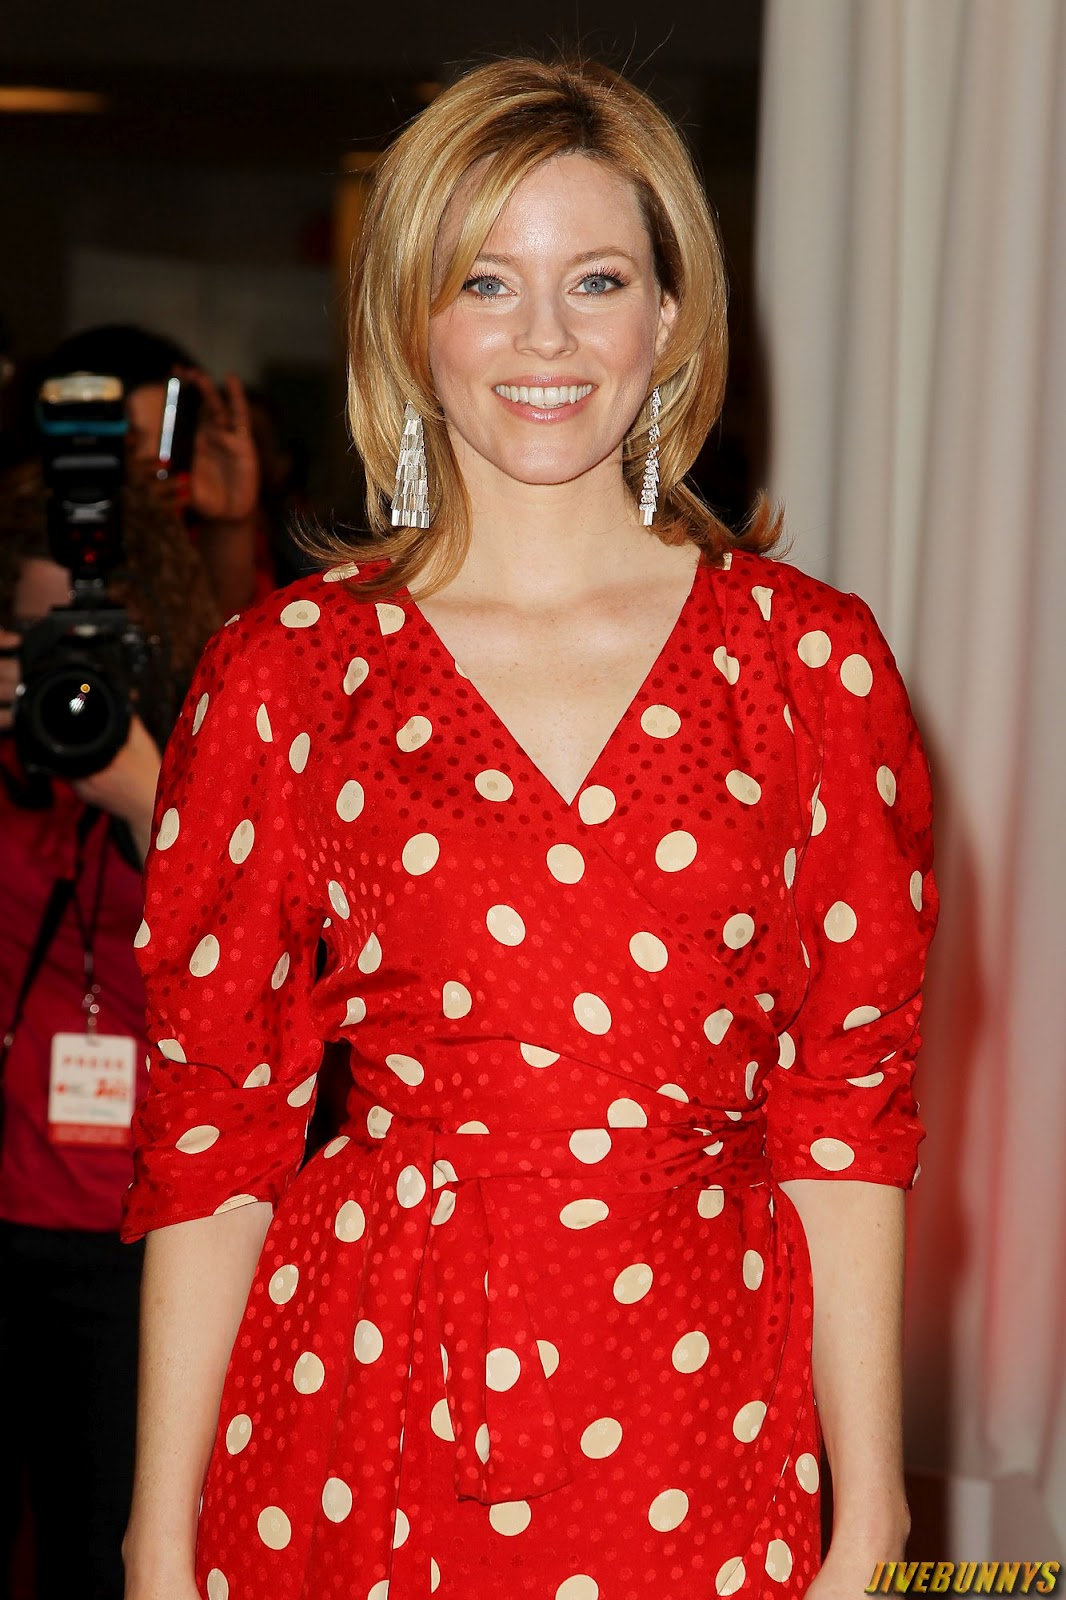 Elizabeth Banks - New Photos